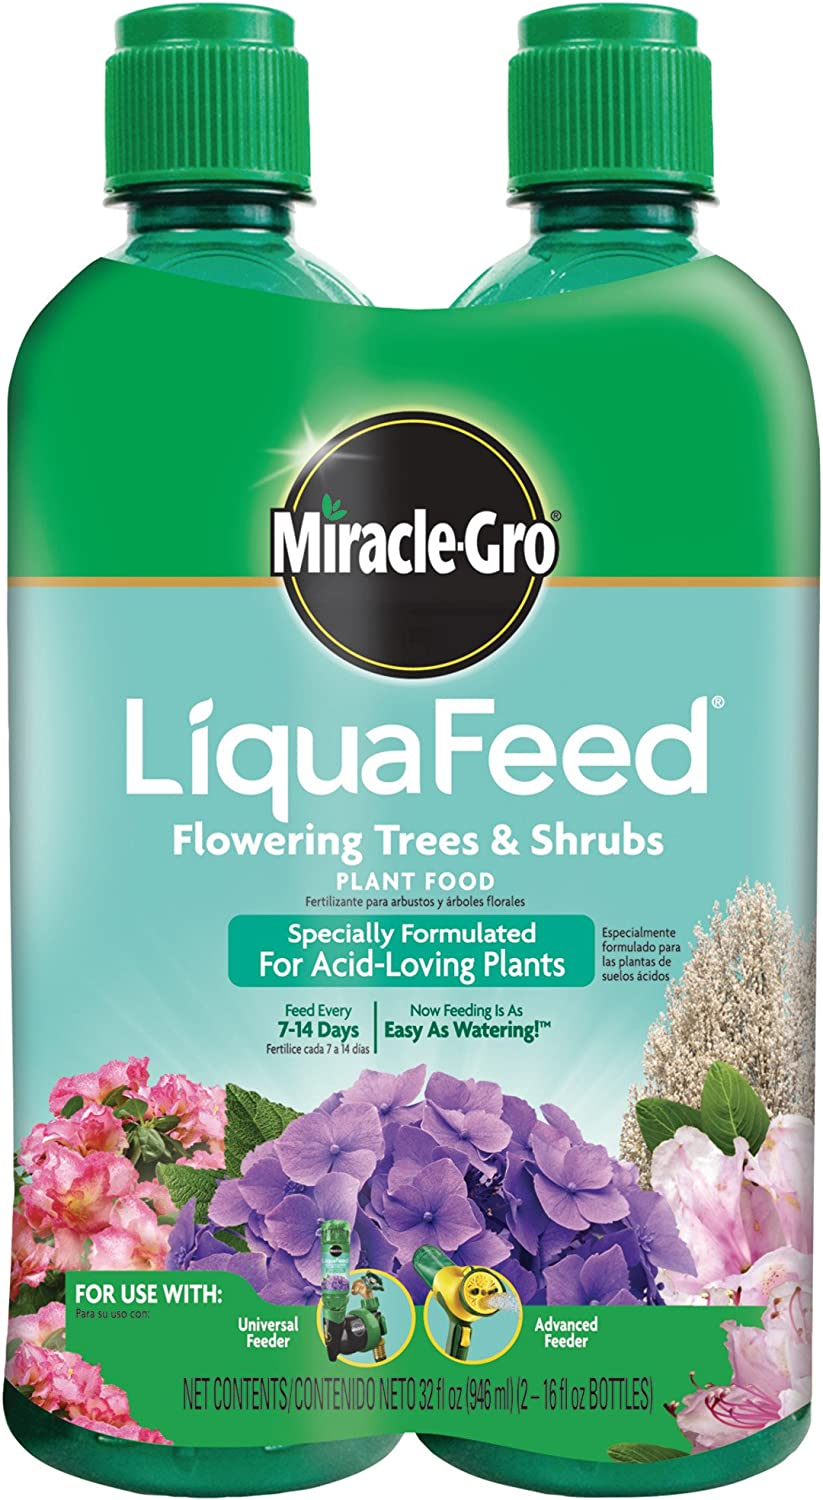 Miracle-Gro LiquaFeed Flowering Trees & Shrubs Plant Food, 2-Pack Refills